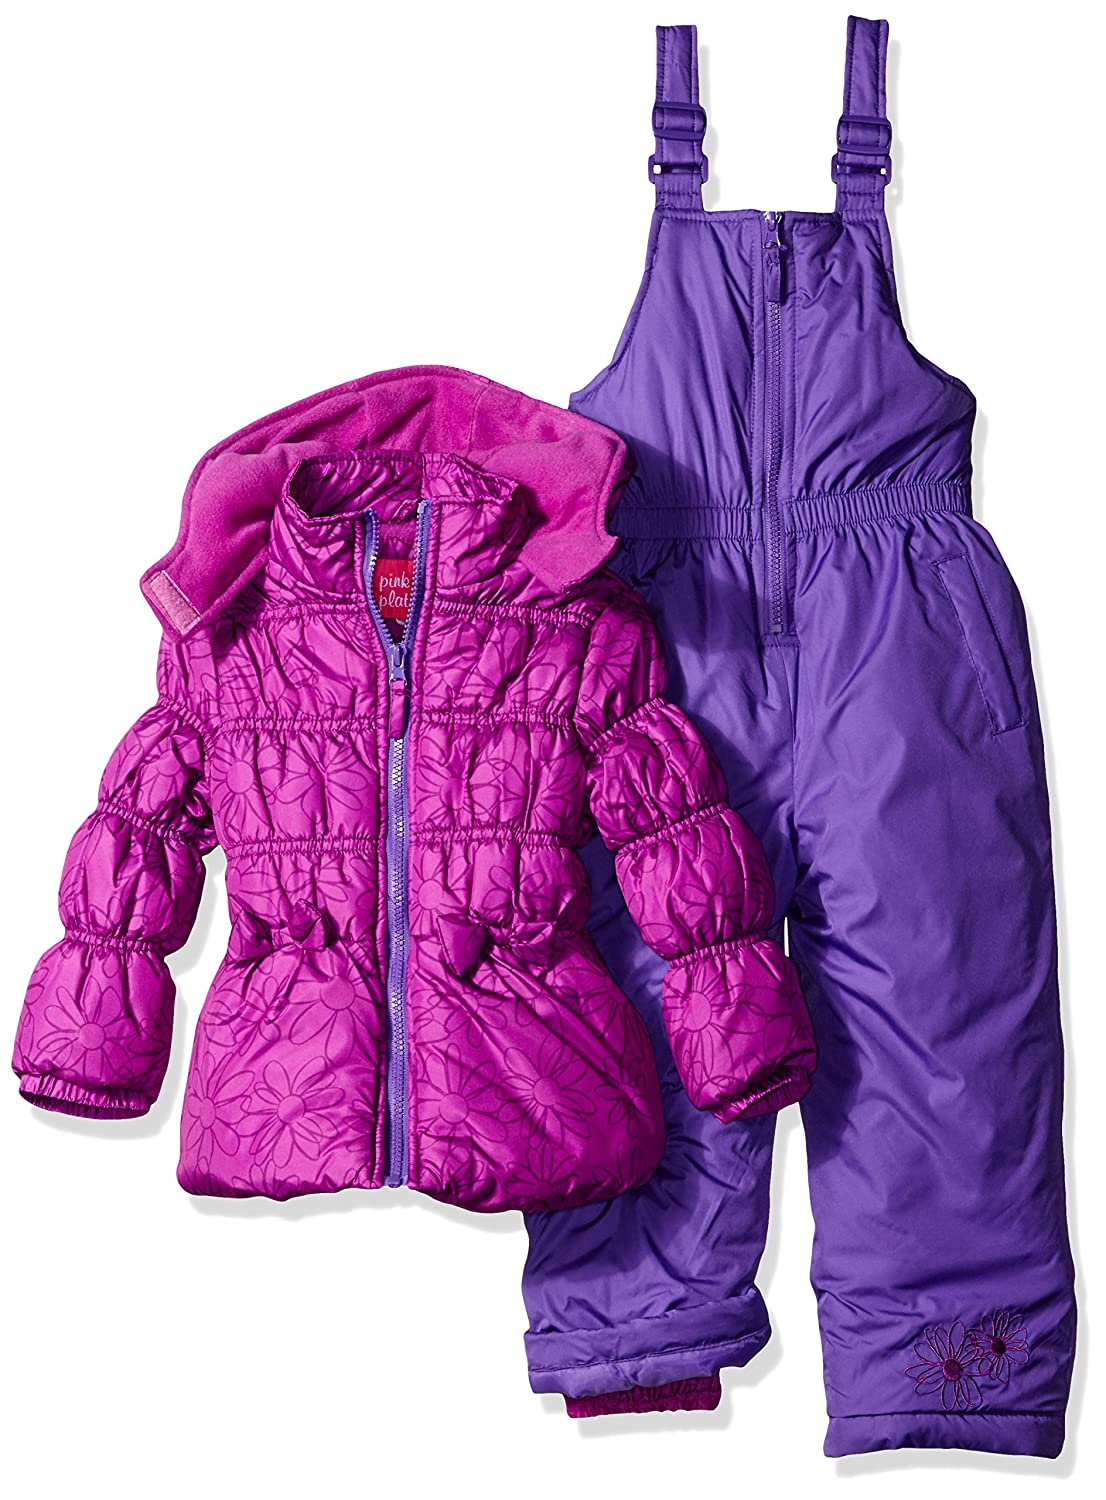 find purple brand shoes toddler from girls platinum t accessories clothing girl baby snow zipper pants pink and polyester size winter newborn warm boy